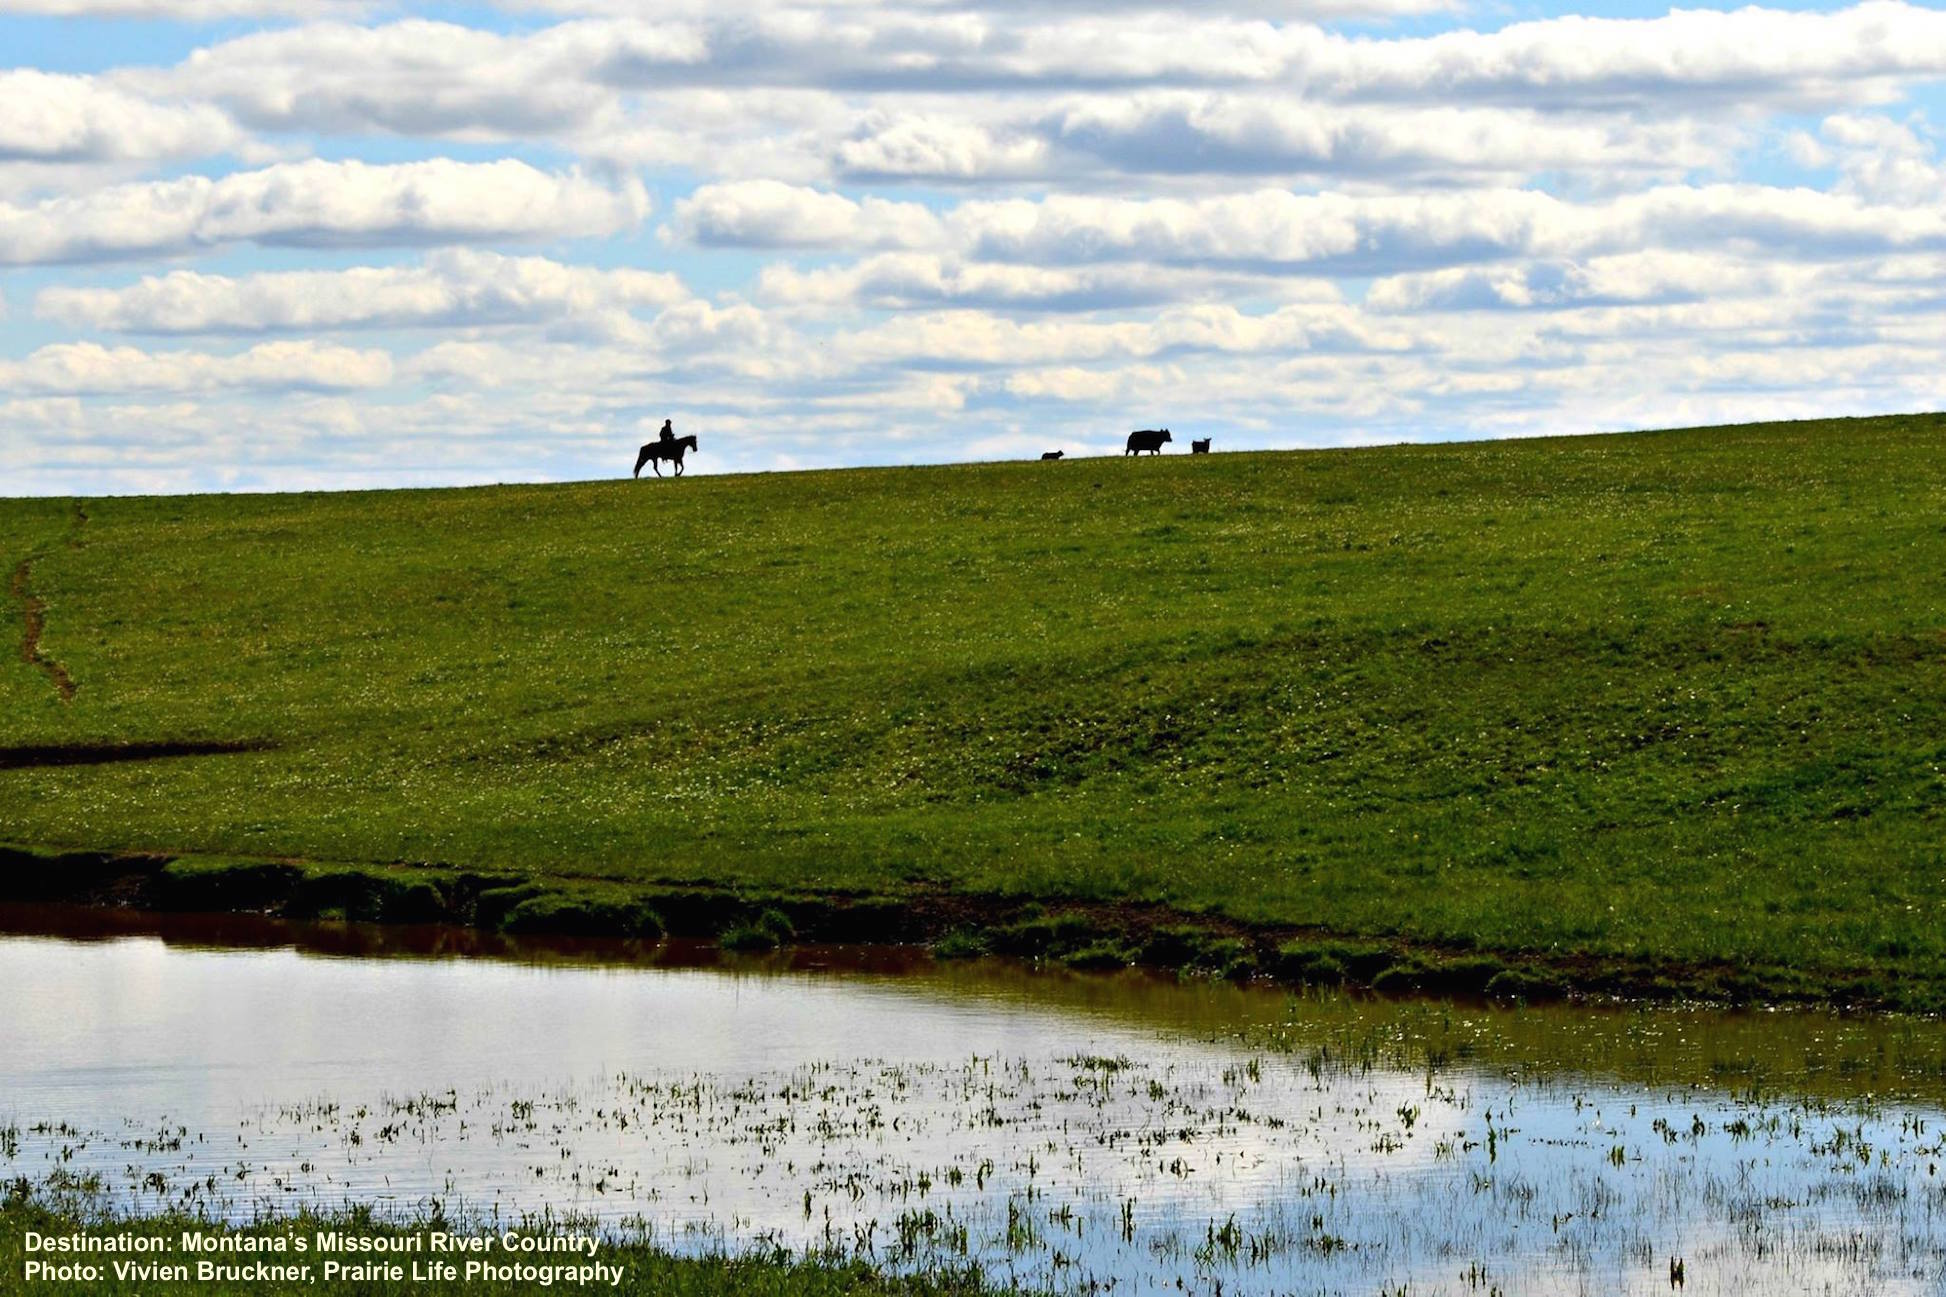 CHASING COWS. A RANCH AND OPEN SKY OUTSIDE OF MALTA, PHILLIPS COUNTY, MONTANA. IMAGE: COURTESY OF ©VIVIEN BRUCKNER, PRAIRIE LIFE PHOTOGRAPHY & PHILLCO ECONOMIC GROWTH COUNCIL.